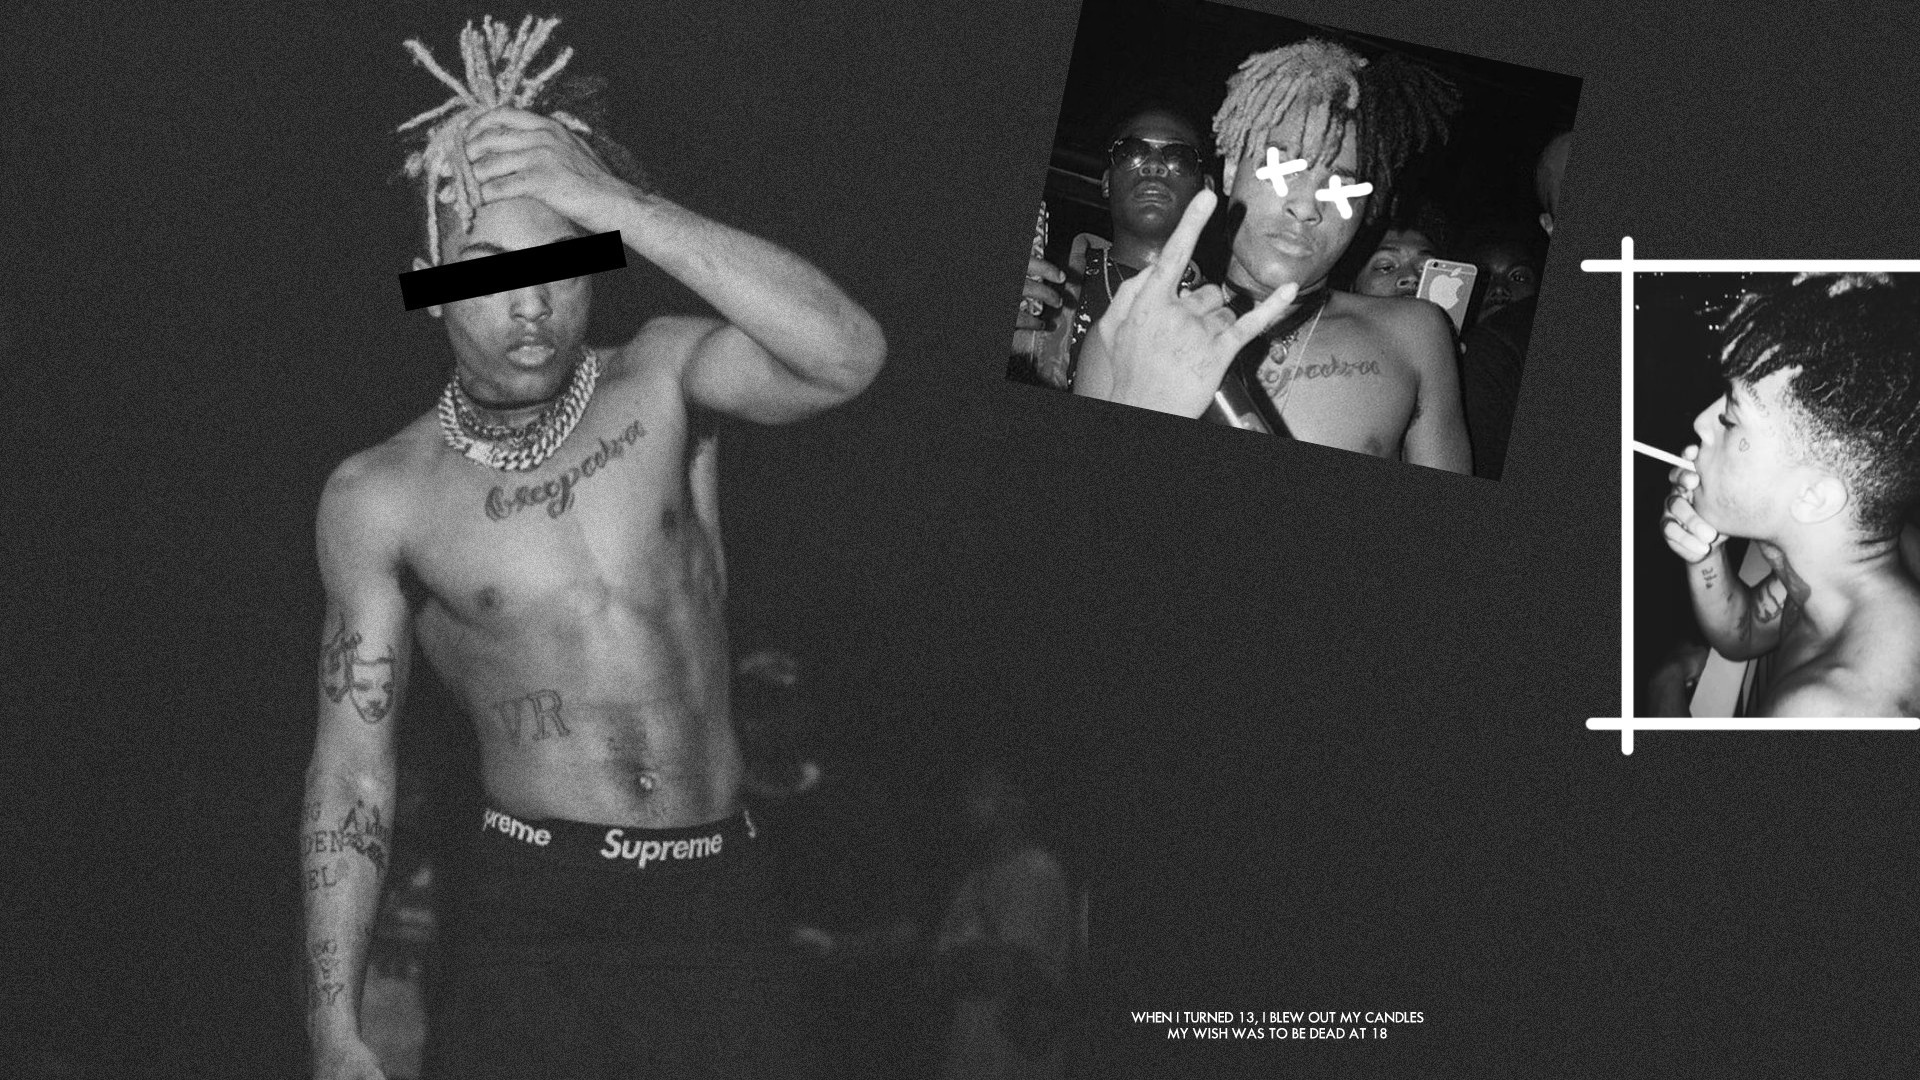 As a woman, i didn't like xxxtentacion, but i didn't want him to die either